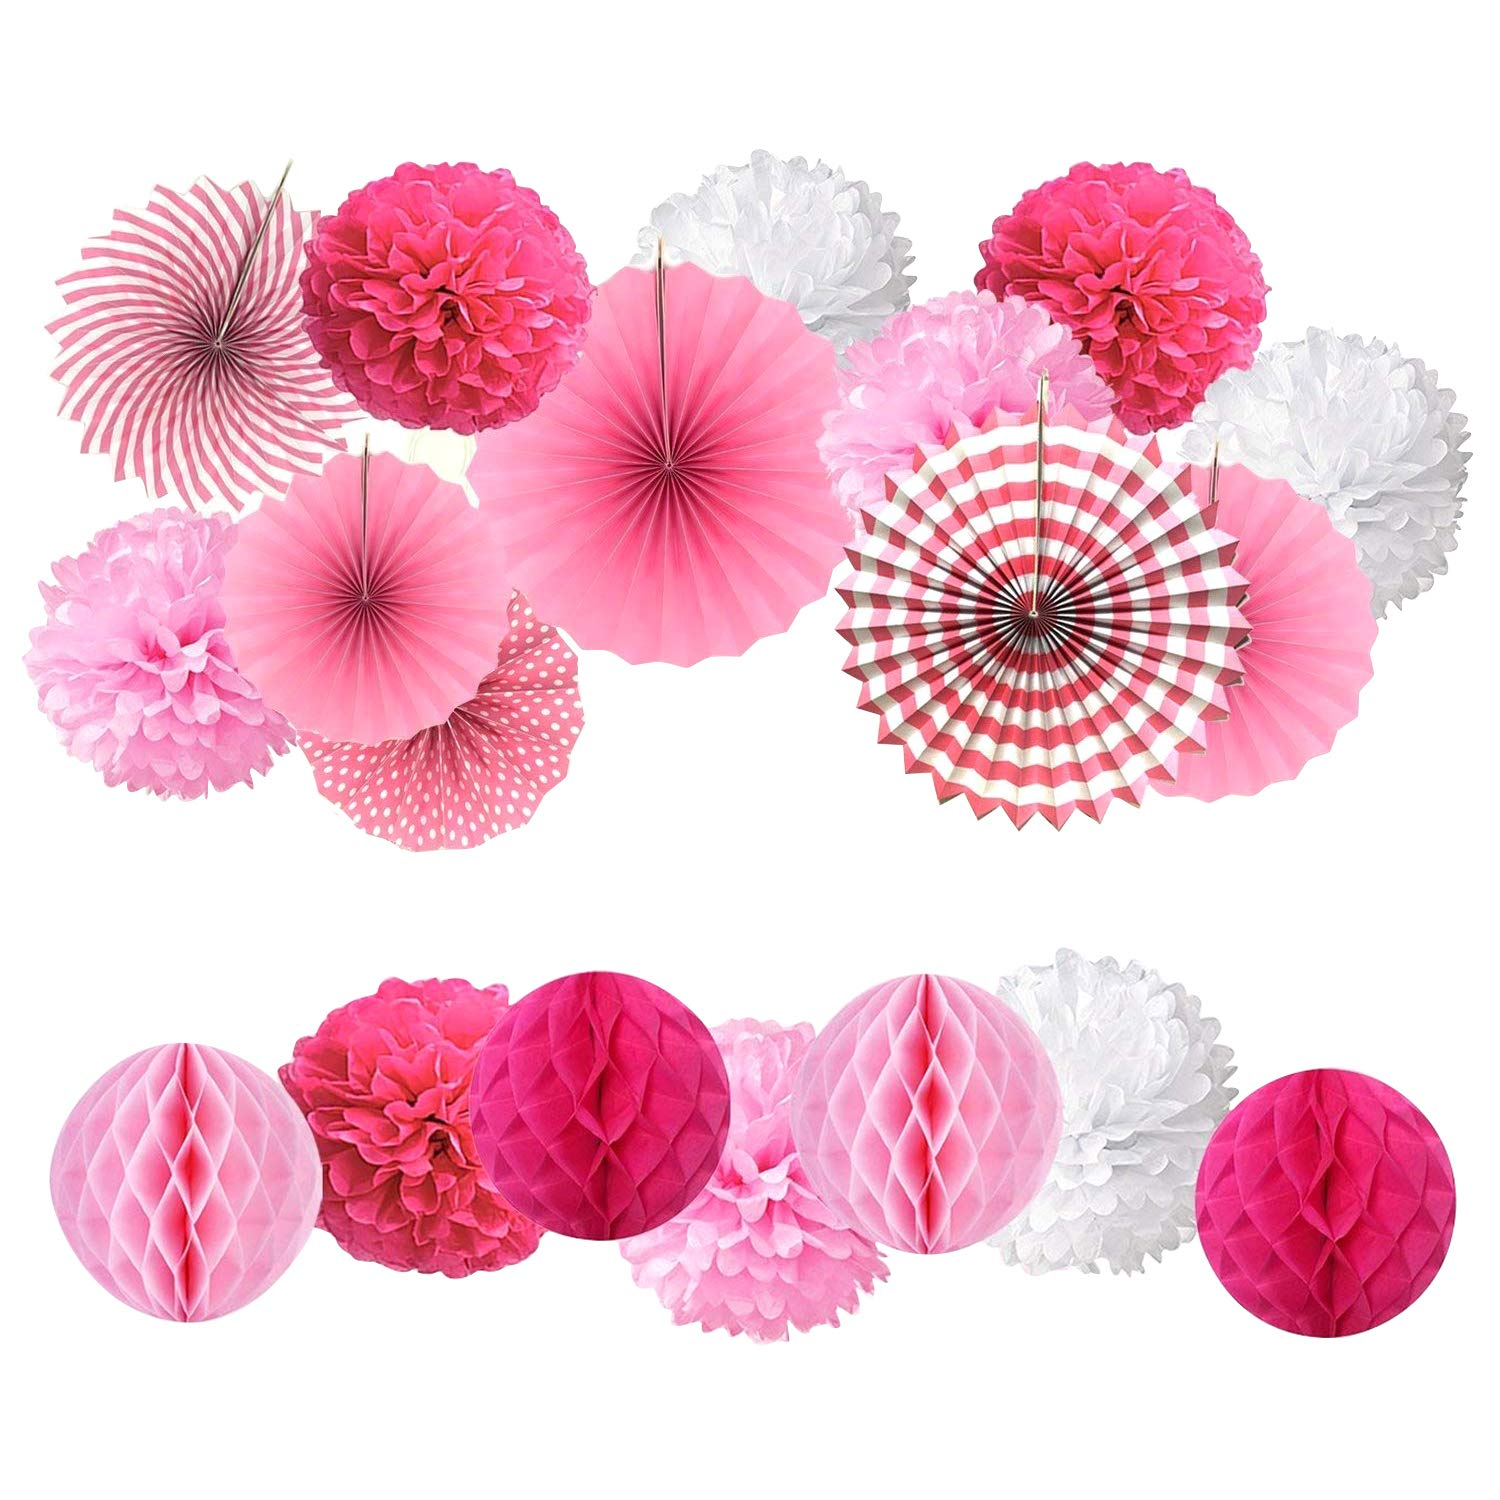 19 confezione mista carta velina pompon fiori/Paper fans/a nido d' ape palle, Hanging Paper fan set per compleanno Baby Shower wedding festival Decorations – rosa MYSWEETY